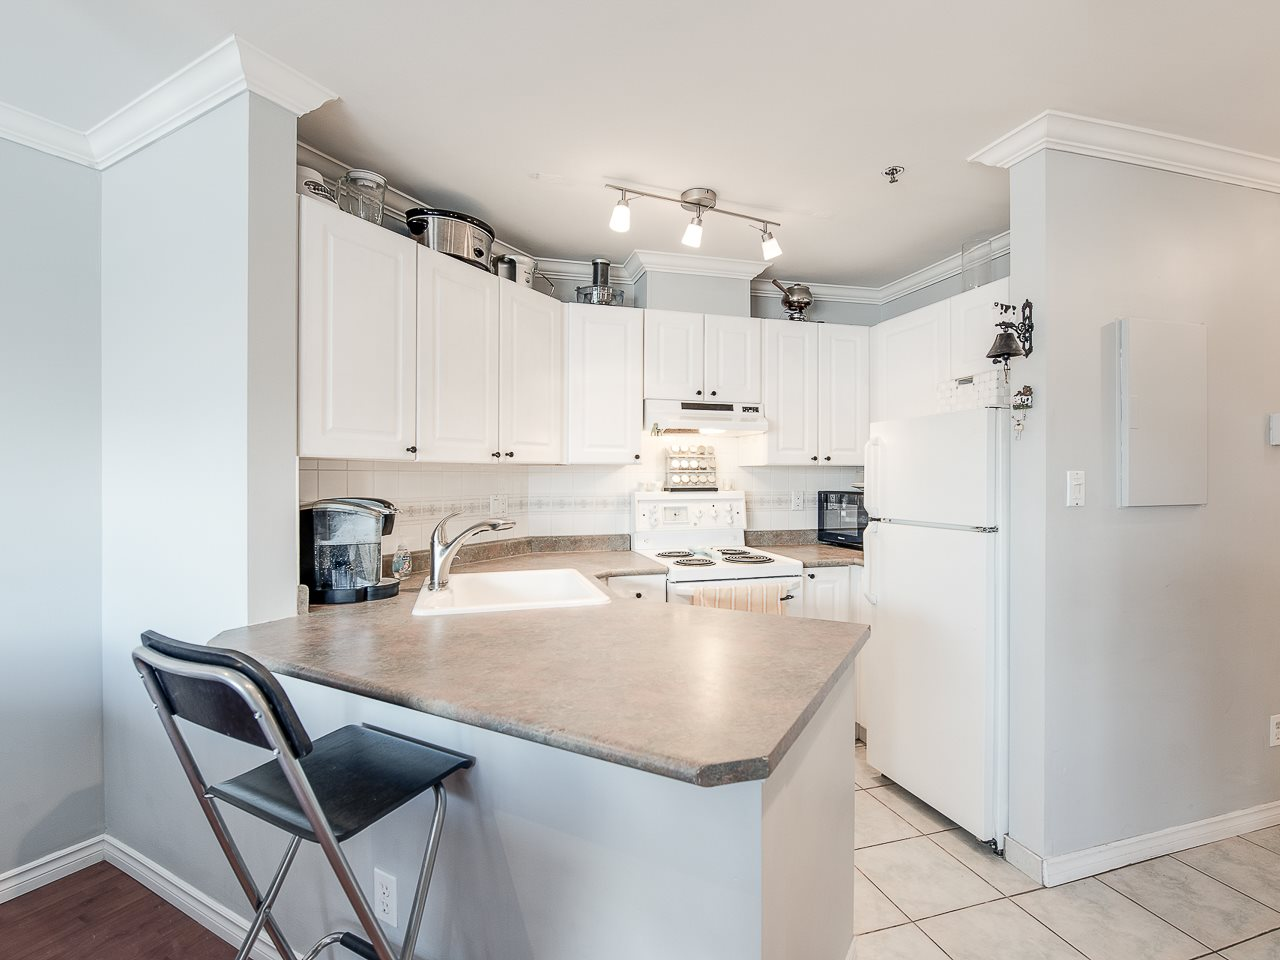 Photo 9: 304 2025 STEPHENS STREET in Vancouver: Kitsilano Condo for sale (Vancouver West)  : MLS® # R2158946